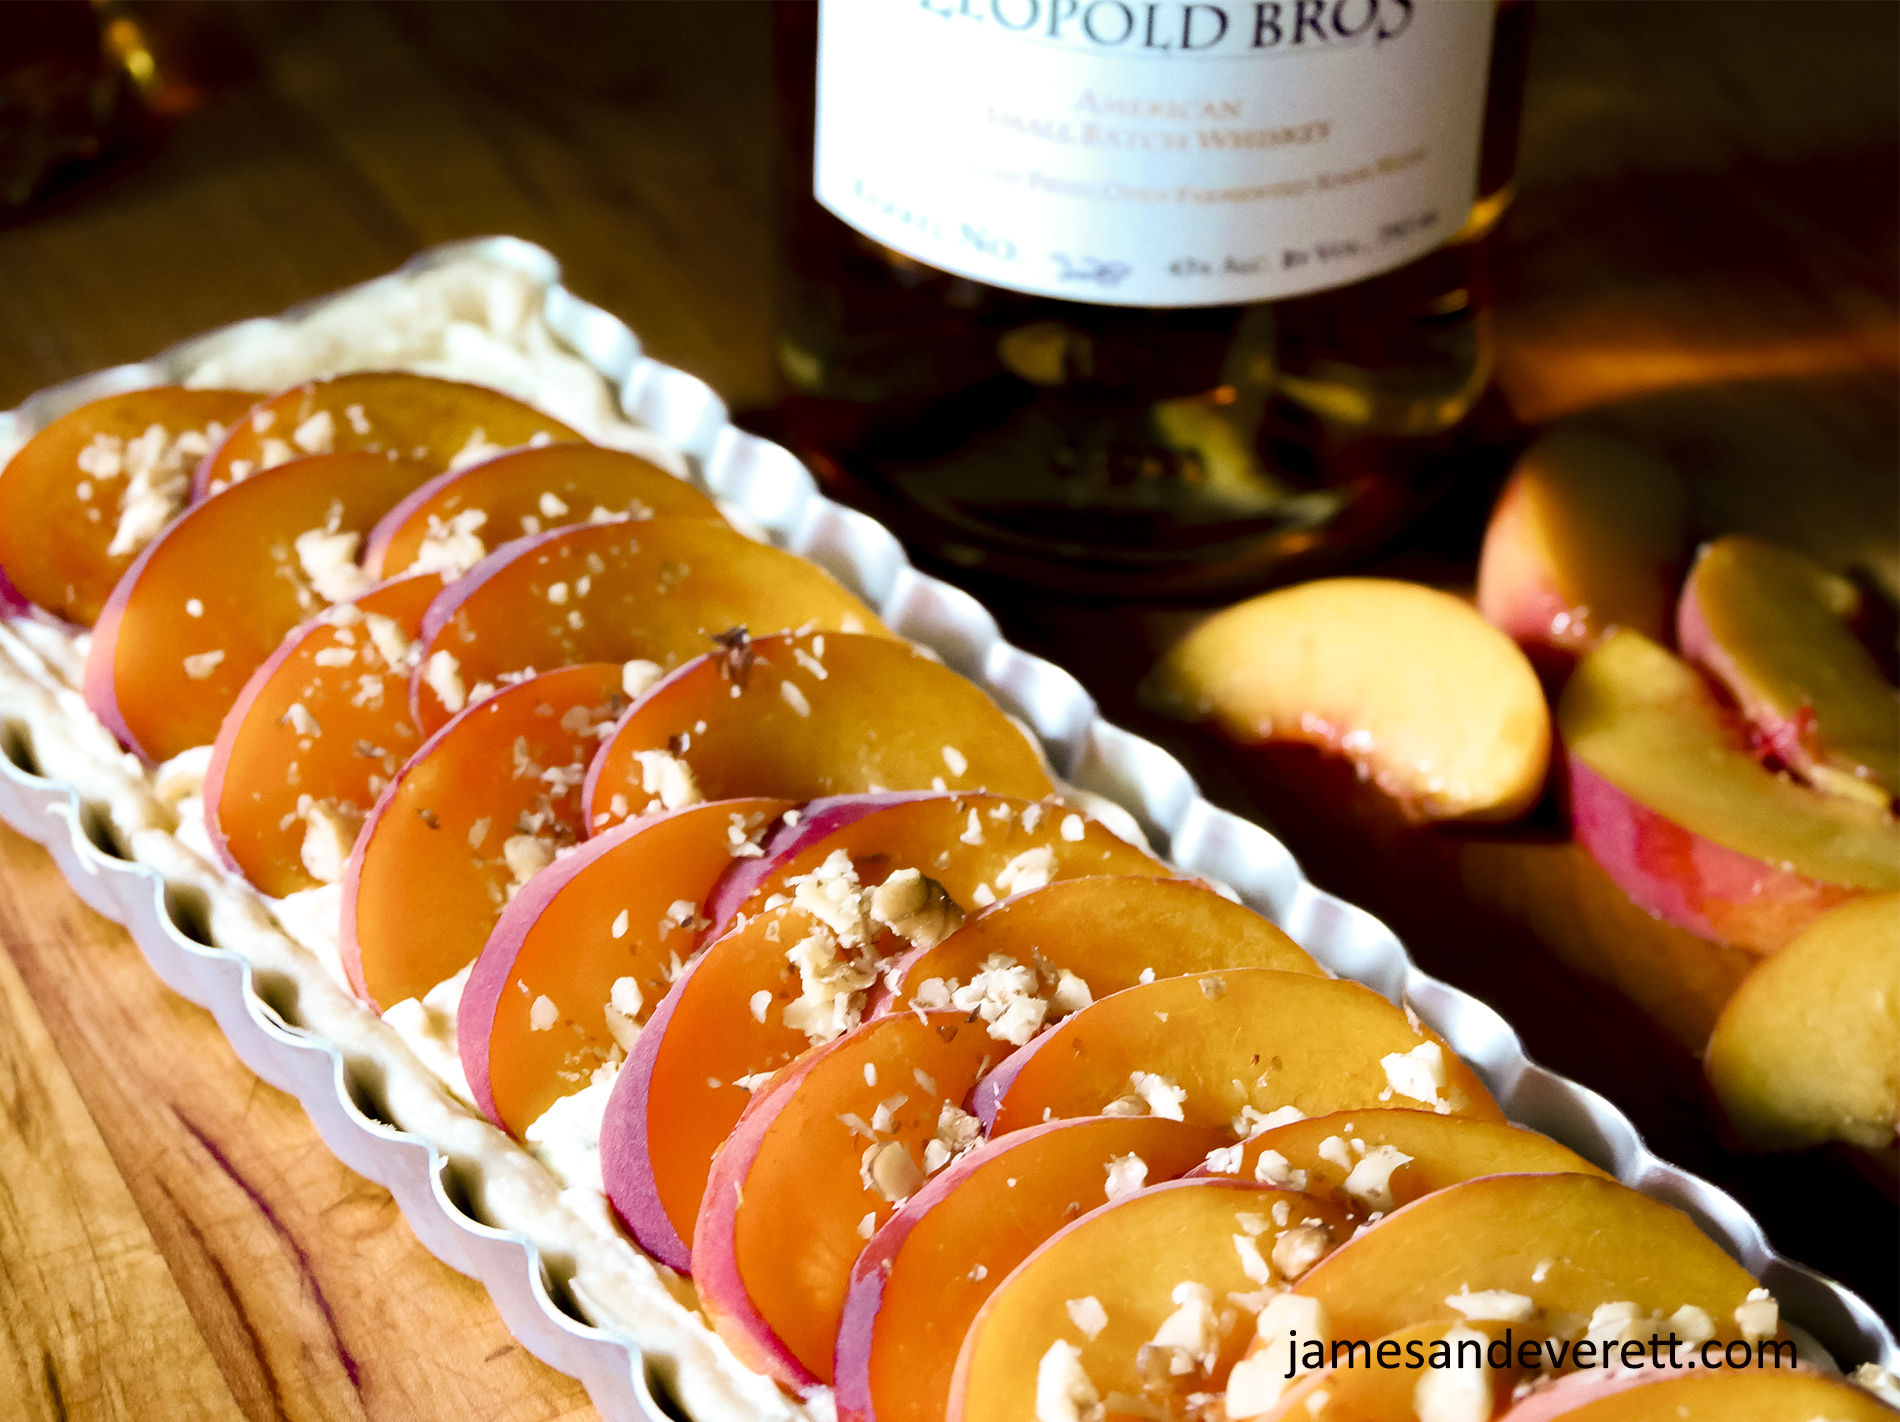 Honey & Whiskey Peach Tart